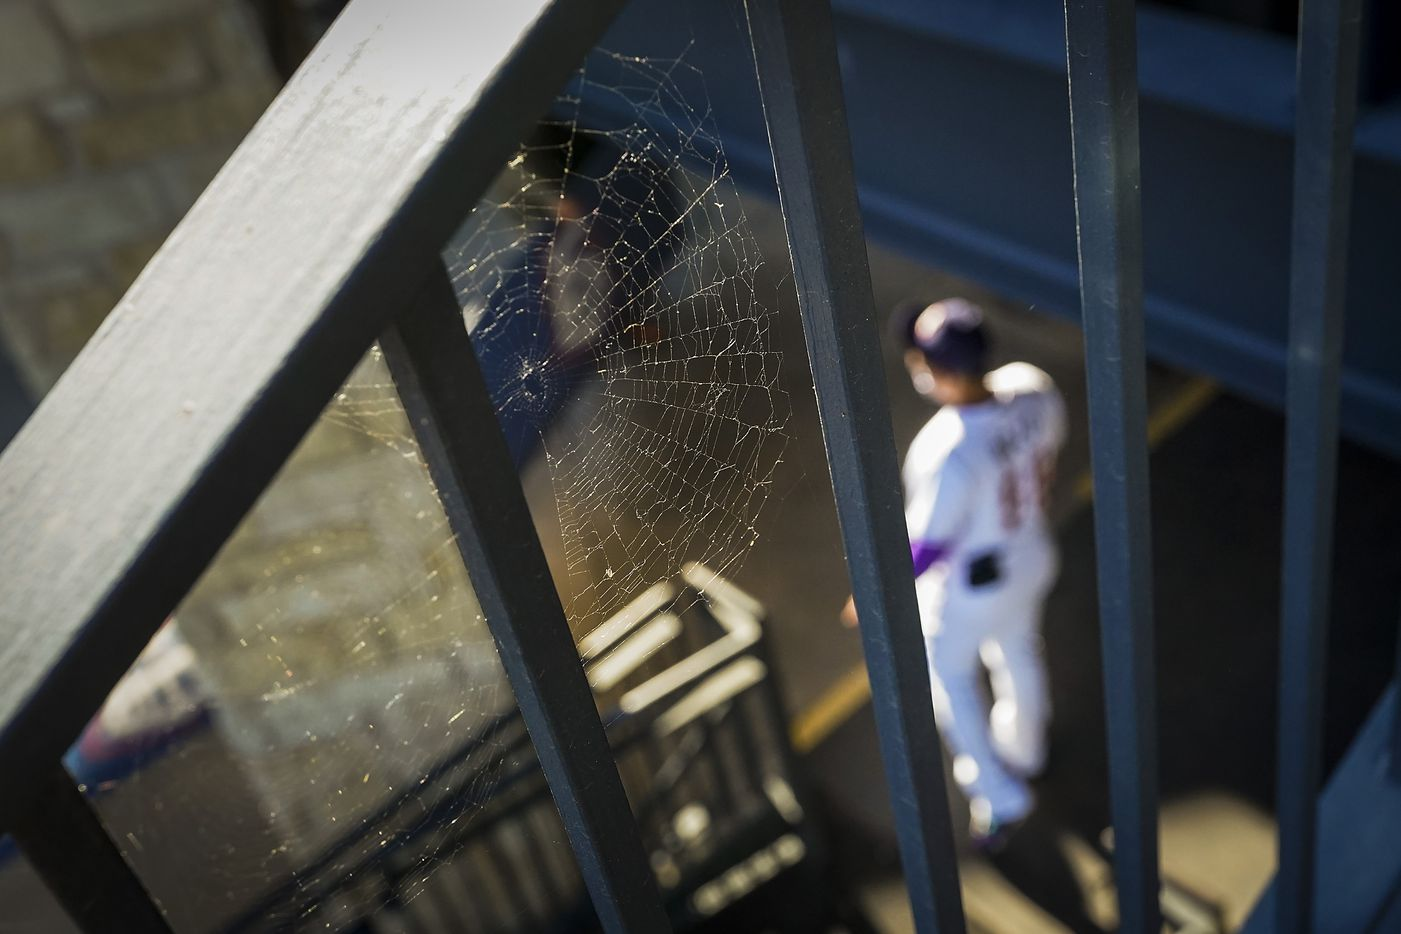 A spiderweb is seen on a railing as Round Rock Express catcher Yohel Pozo prepares to take the field at Dell Diamond for the Round Rock Express season opener against the Oklahoma City Dodgers on Thursday, May 6, 2021, in Round Rock, Texas. It was the first gamer for the Express in 601 days due to the COVID-19 pandemic.